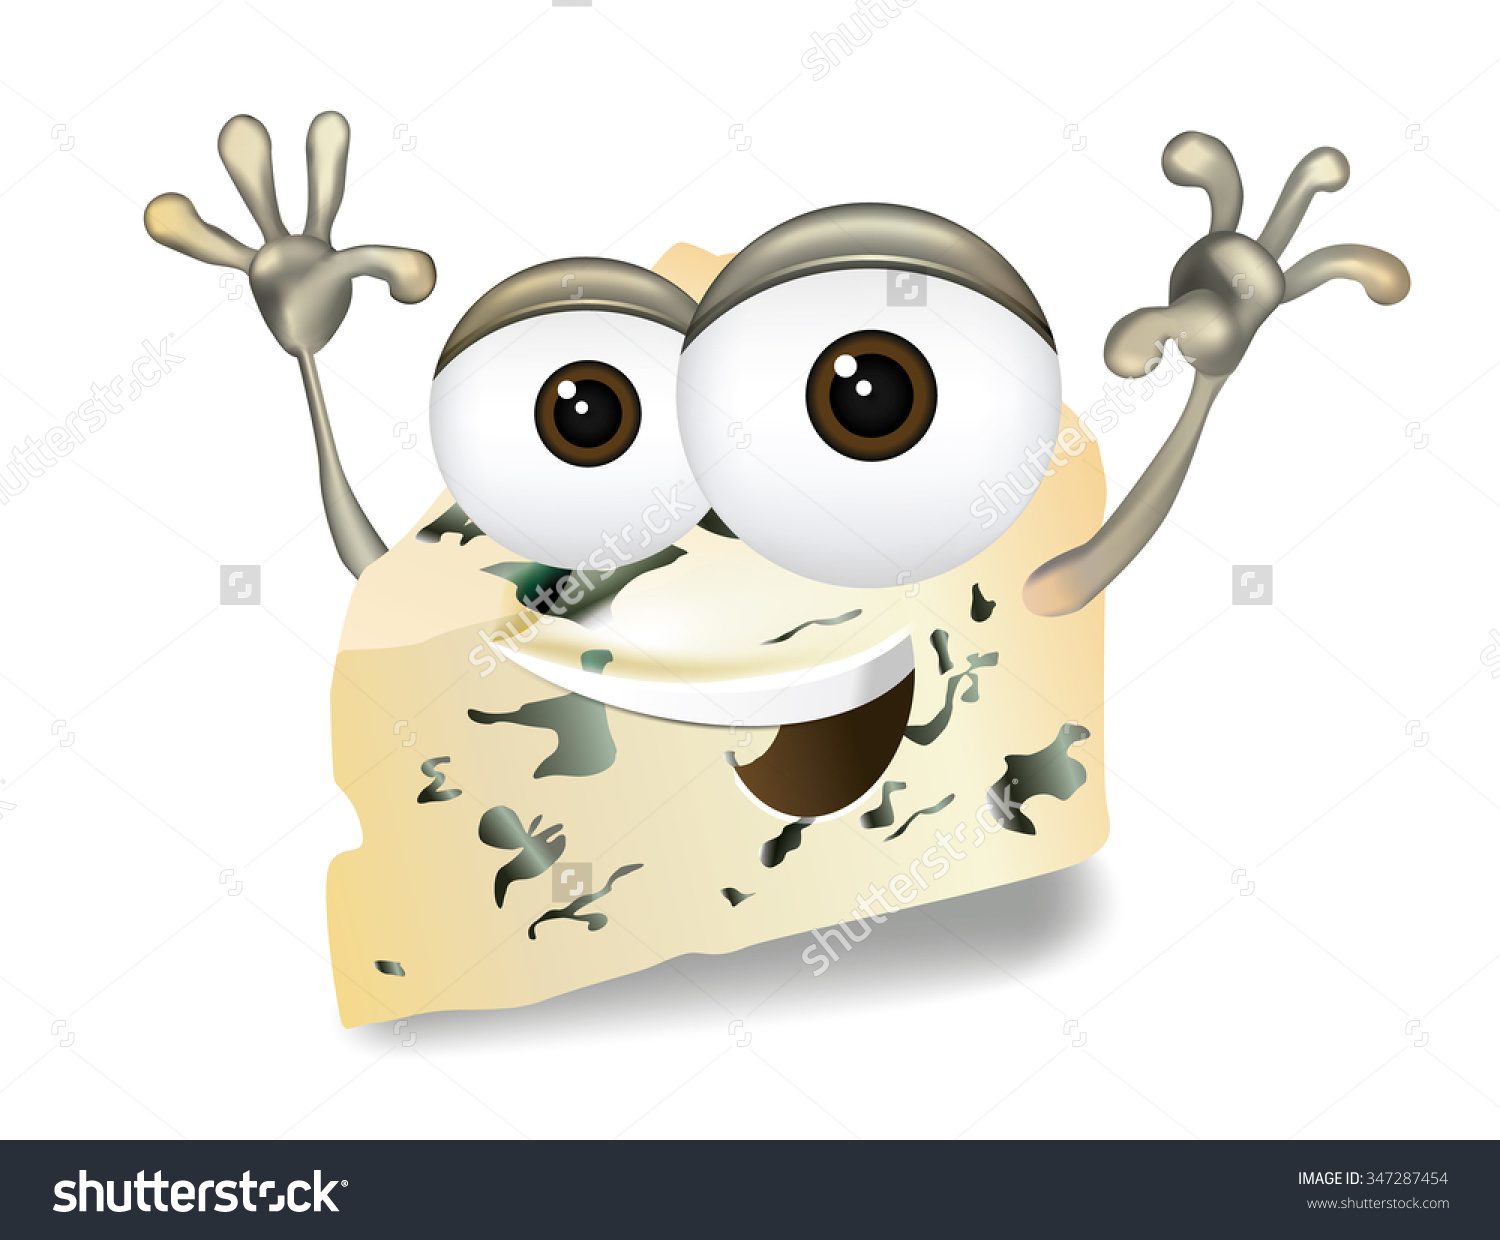 Happy Blue Cheese Cute Funny Gorgonzola Stock Vector 347287454.